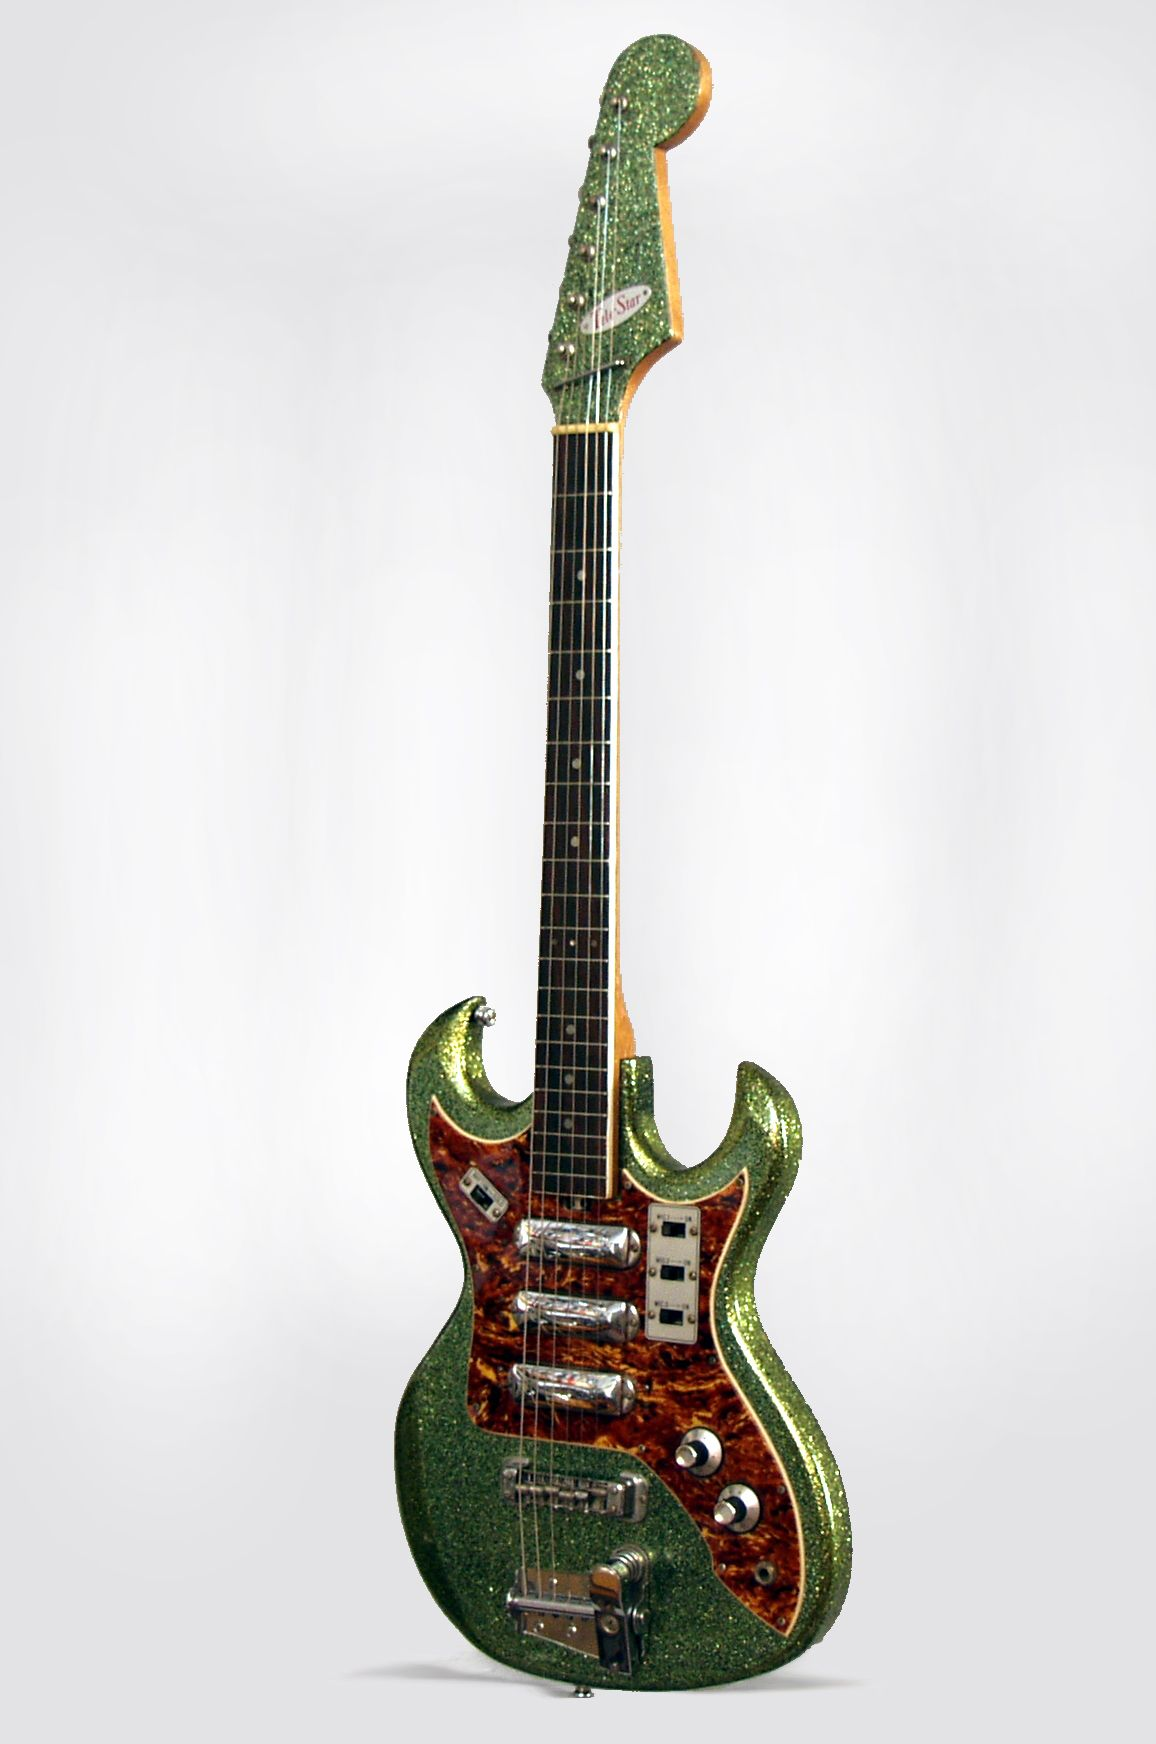 tele star model solid body electric guitar most likely made by teisco c 1964 made in japan green sparkle finish [ 1156 x 1744 Pixel ]